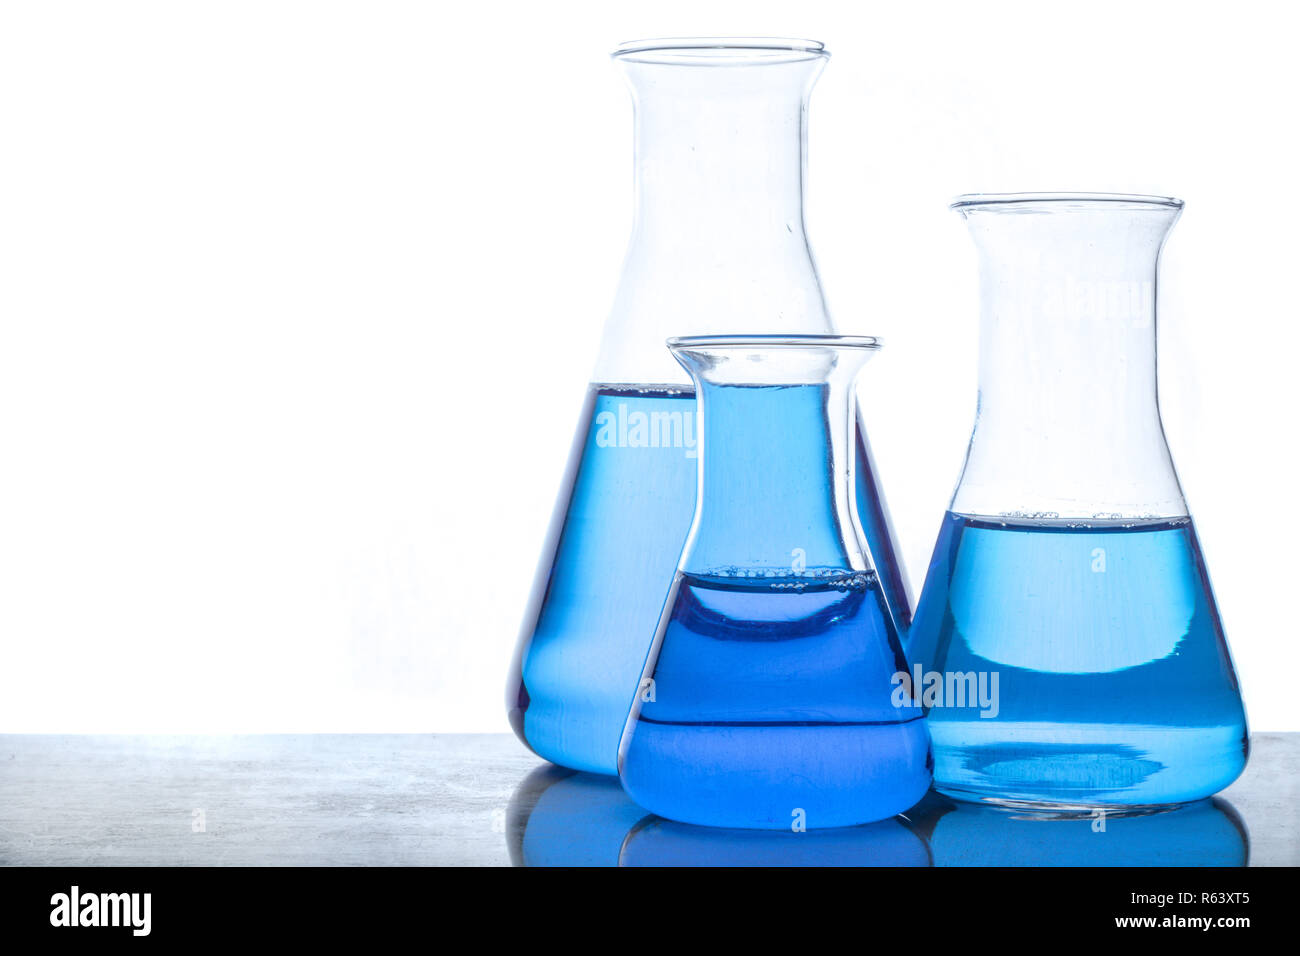 Glass flasks with blue fluid in used in chemistry experiments Stock